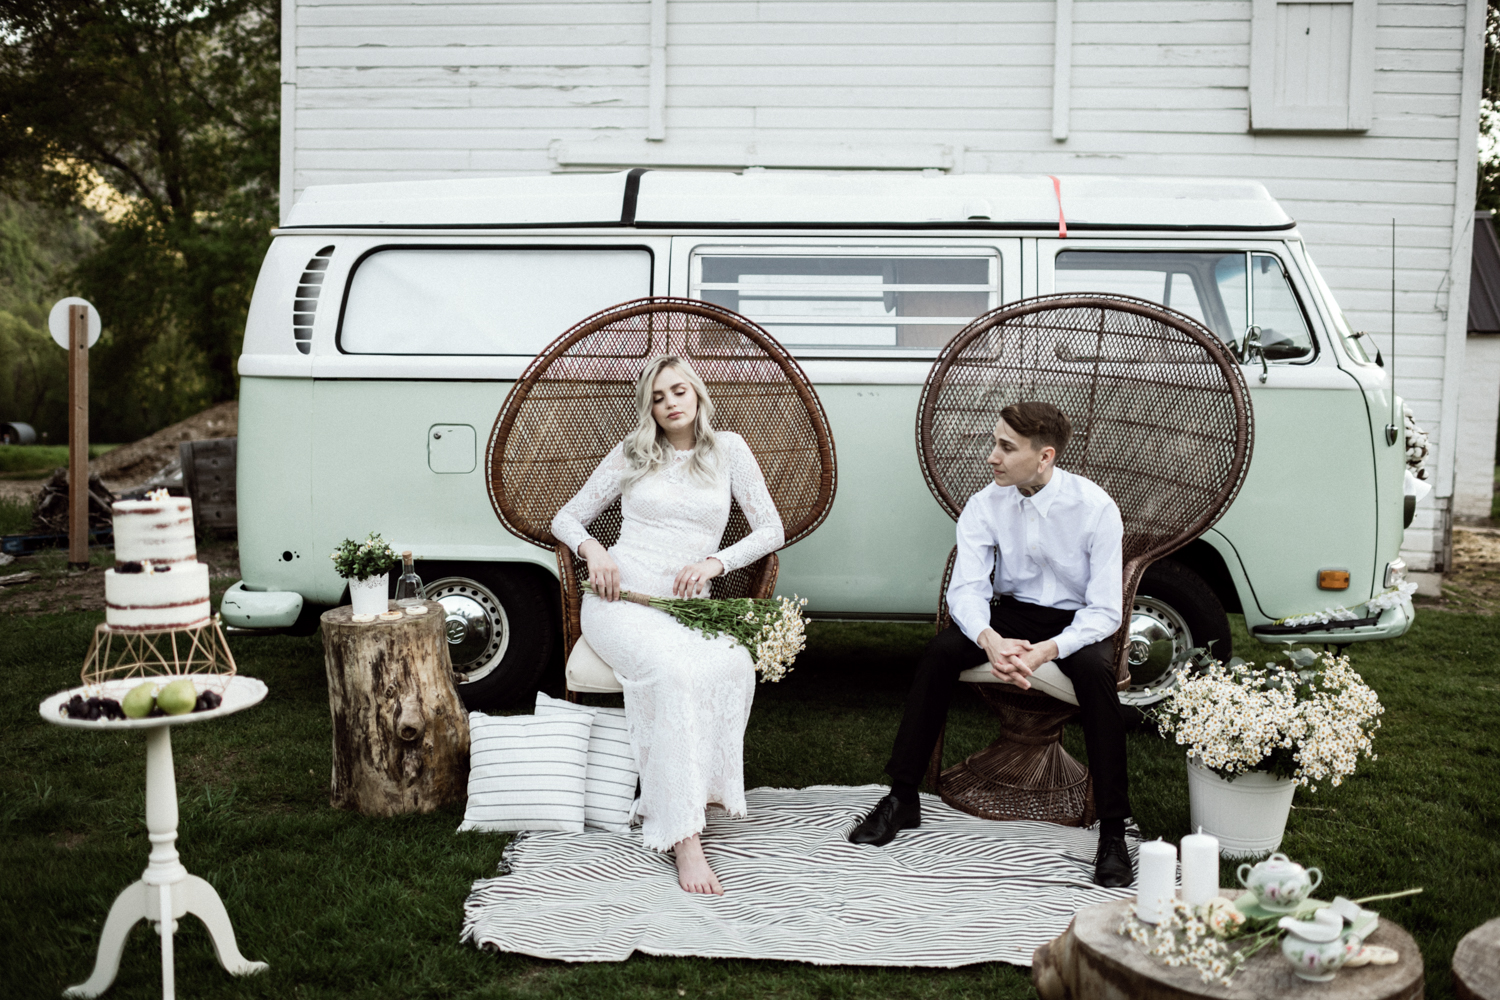 bridal couple sitting on mid century woven chairs in front of vw bus